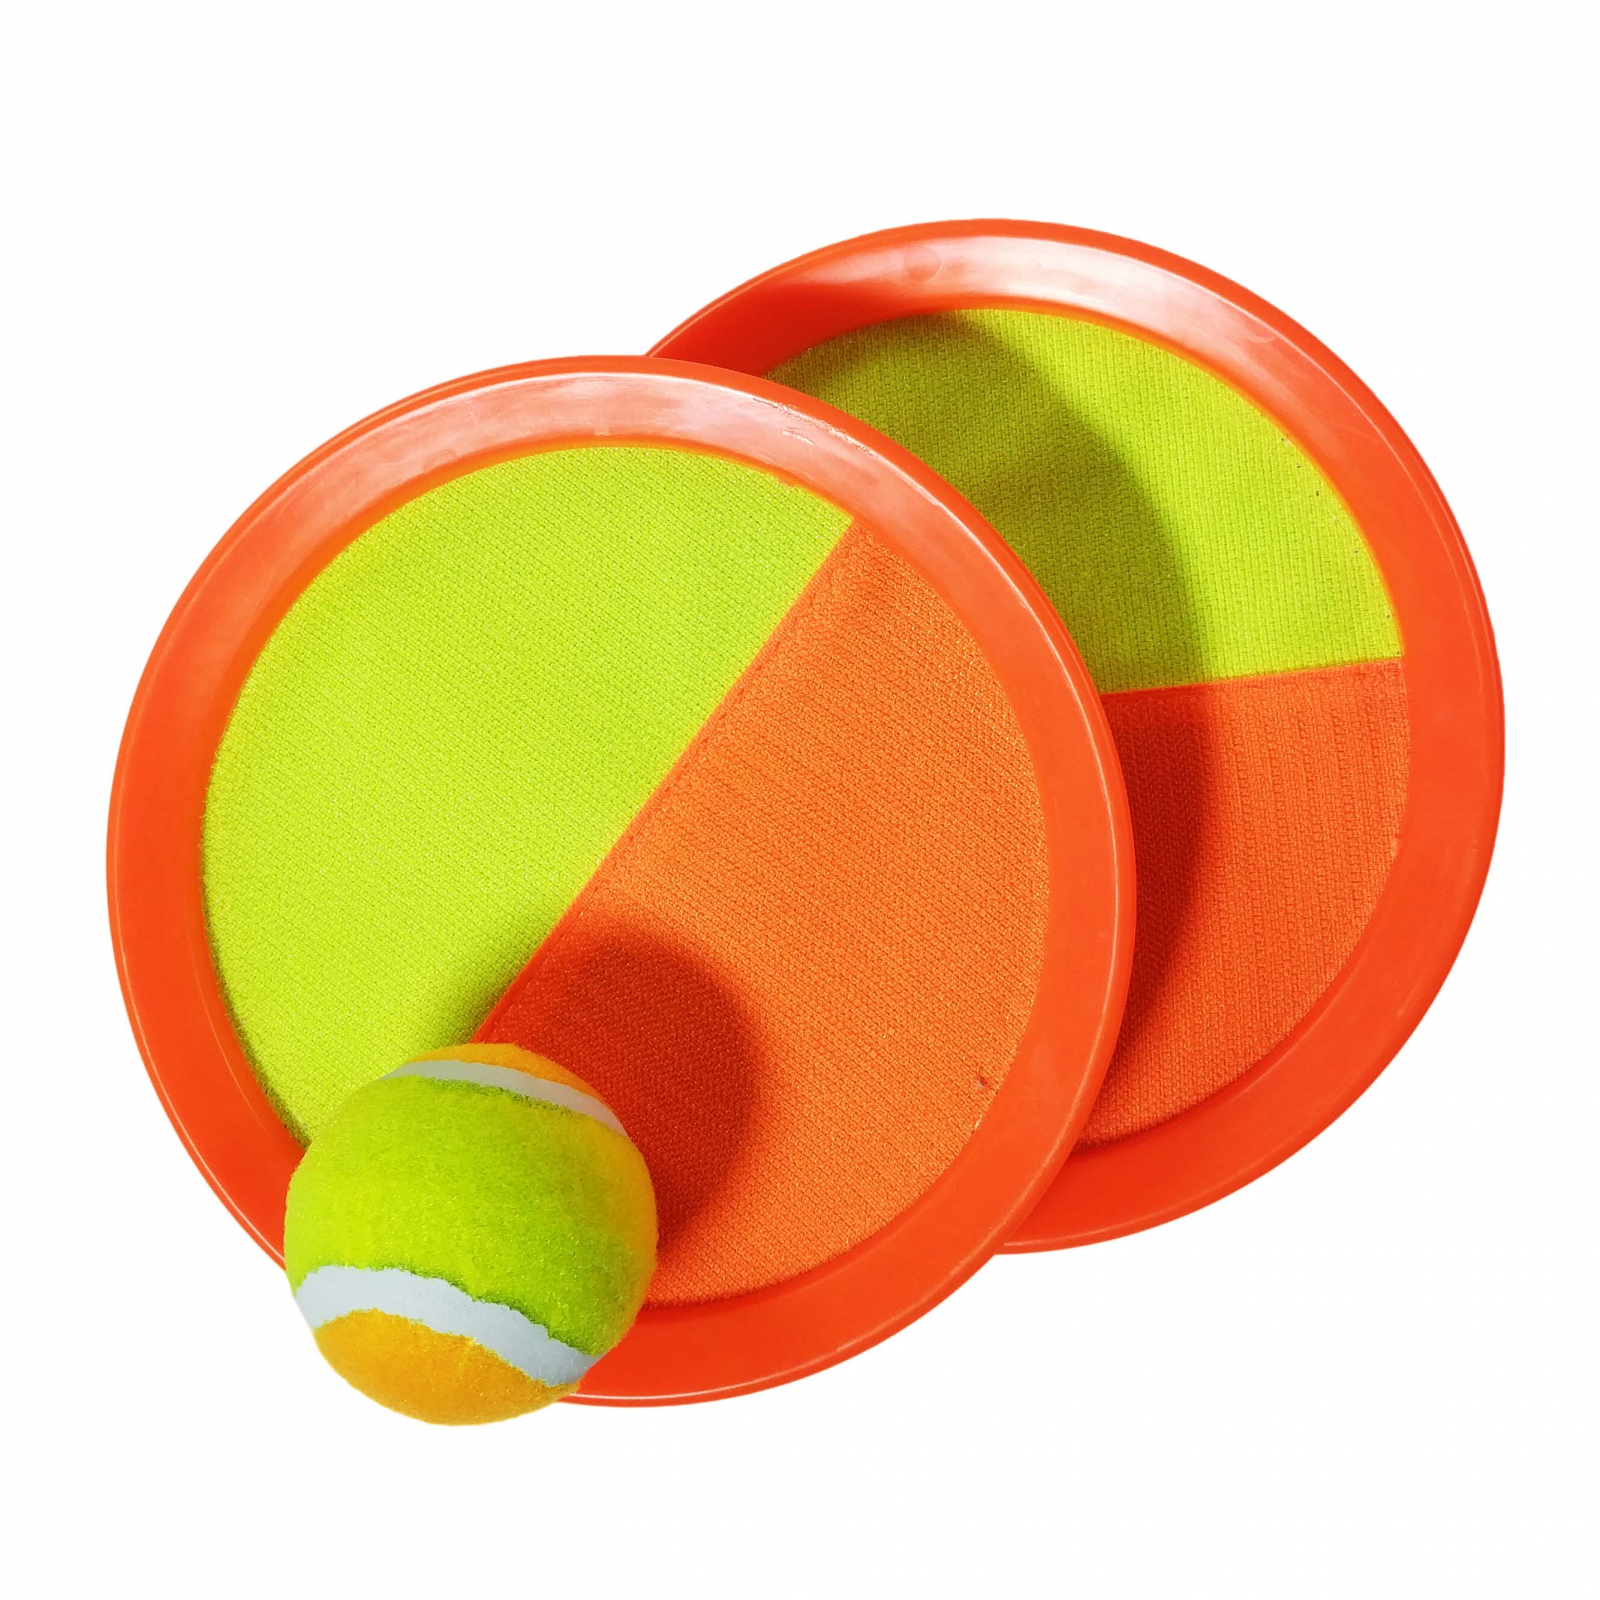 TychoTyke Toss and Catch Self Stick Paddle Game Set Orange